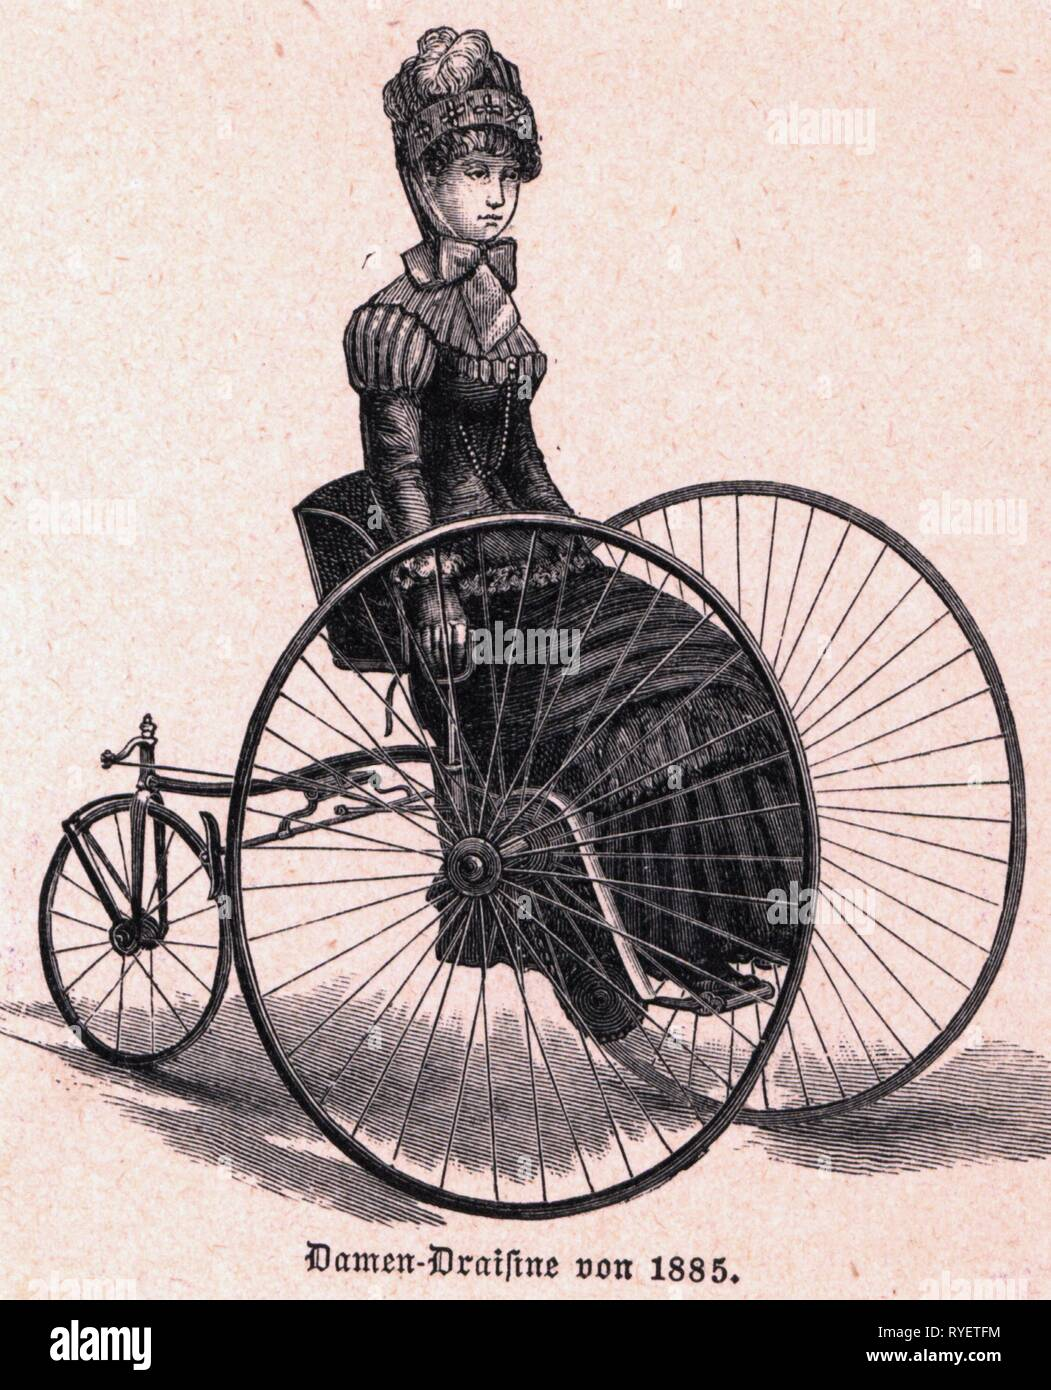 transport / transportation, bicycles, tricycle, ladies' draisine, wood engraving, Germany, 1885, Additional-Rights-Clearance-Info-Not-Available - Stock Image